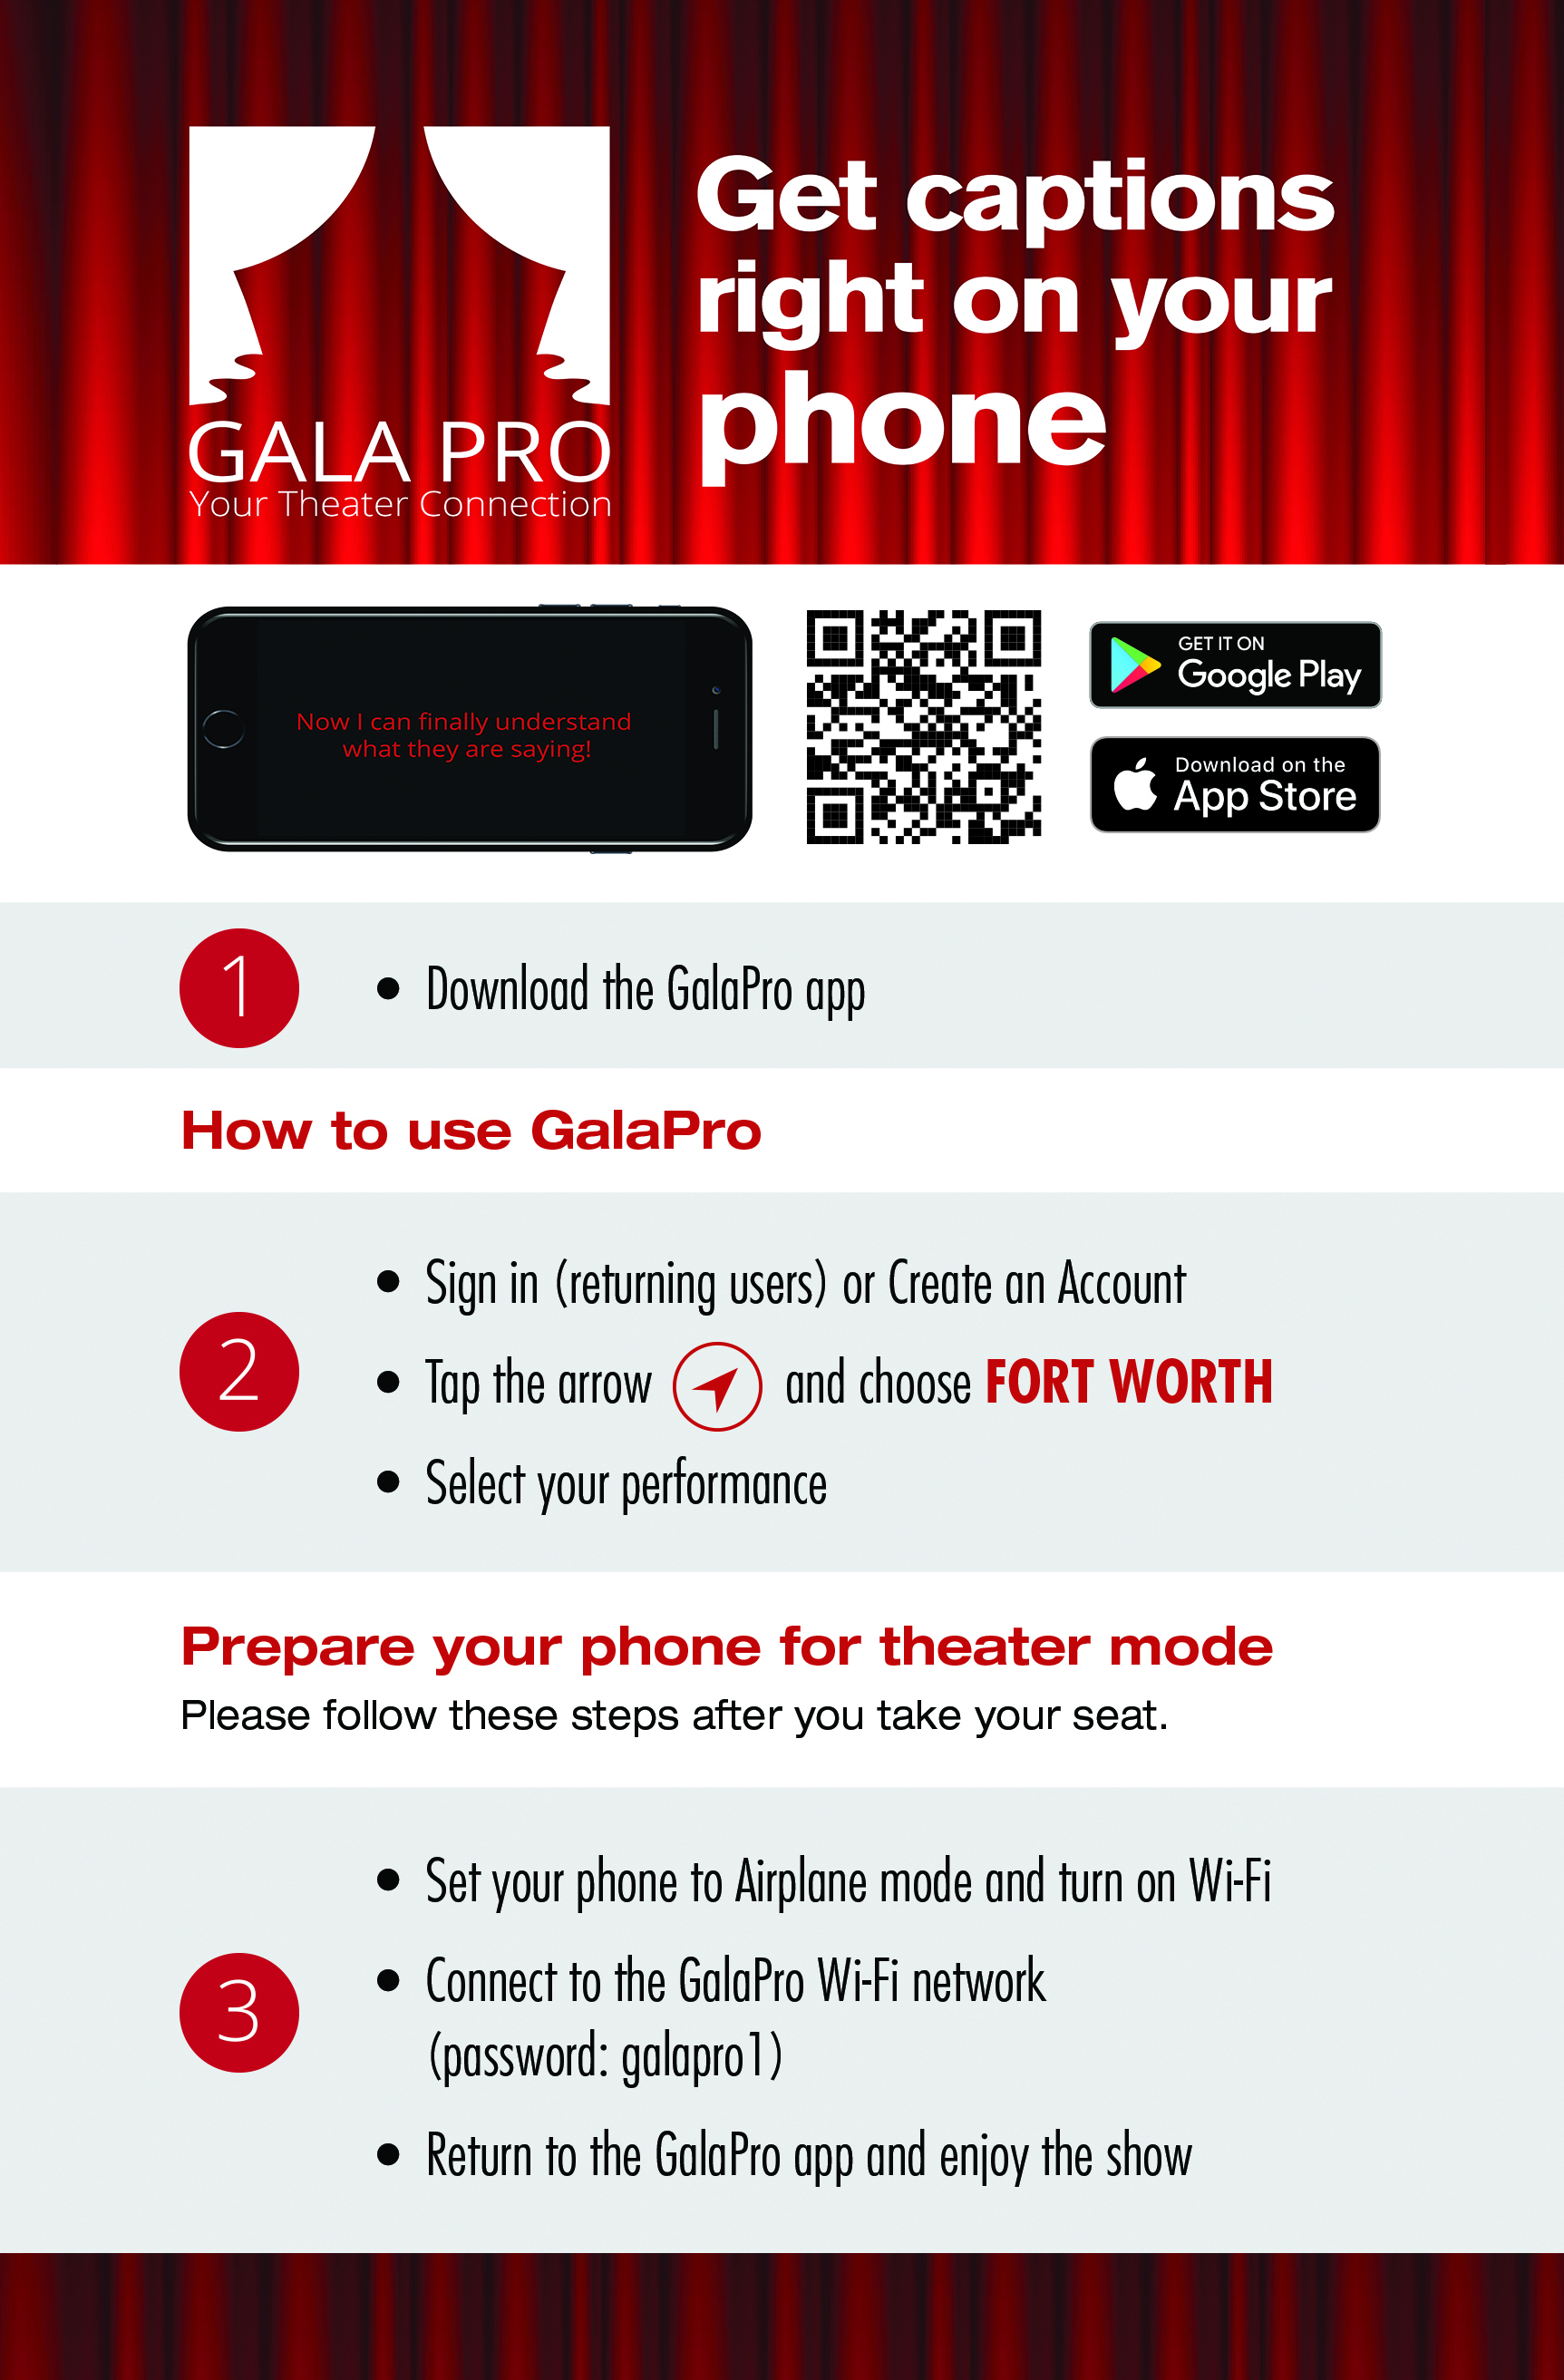 "Using the GalaPro App Before you arrive at the theater:  Download GalaPro from the App Store or Google Play.  Search for GalaPro (one word). New users select ""Get Started Now"" and enter your email and create a password. Tap the compass arrow to select Fort Worth. Choose your performance's title on the home page for show information. When you are in the theater, right before the show:  Set your phone to Airplane mode Turn on Wi-Fi and choose the GalaPro Wi-Fi with the password ""galapro1"" (all lowercase) Enjoy the show!"